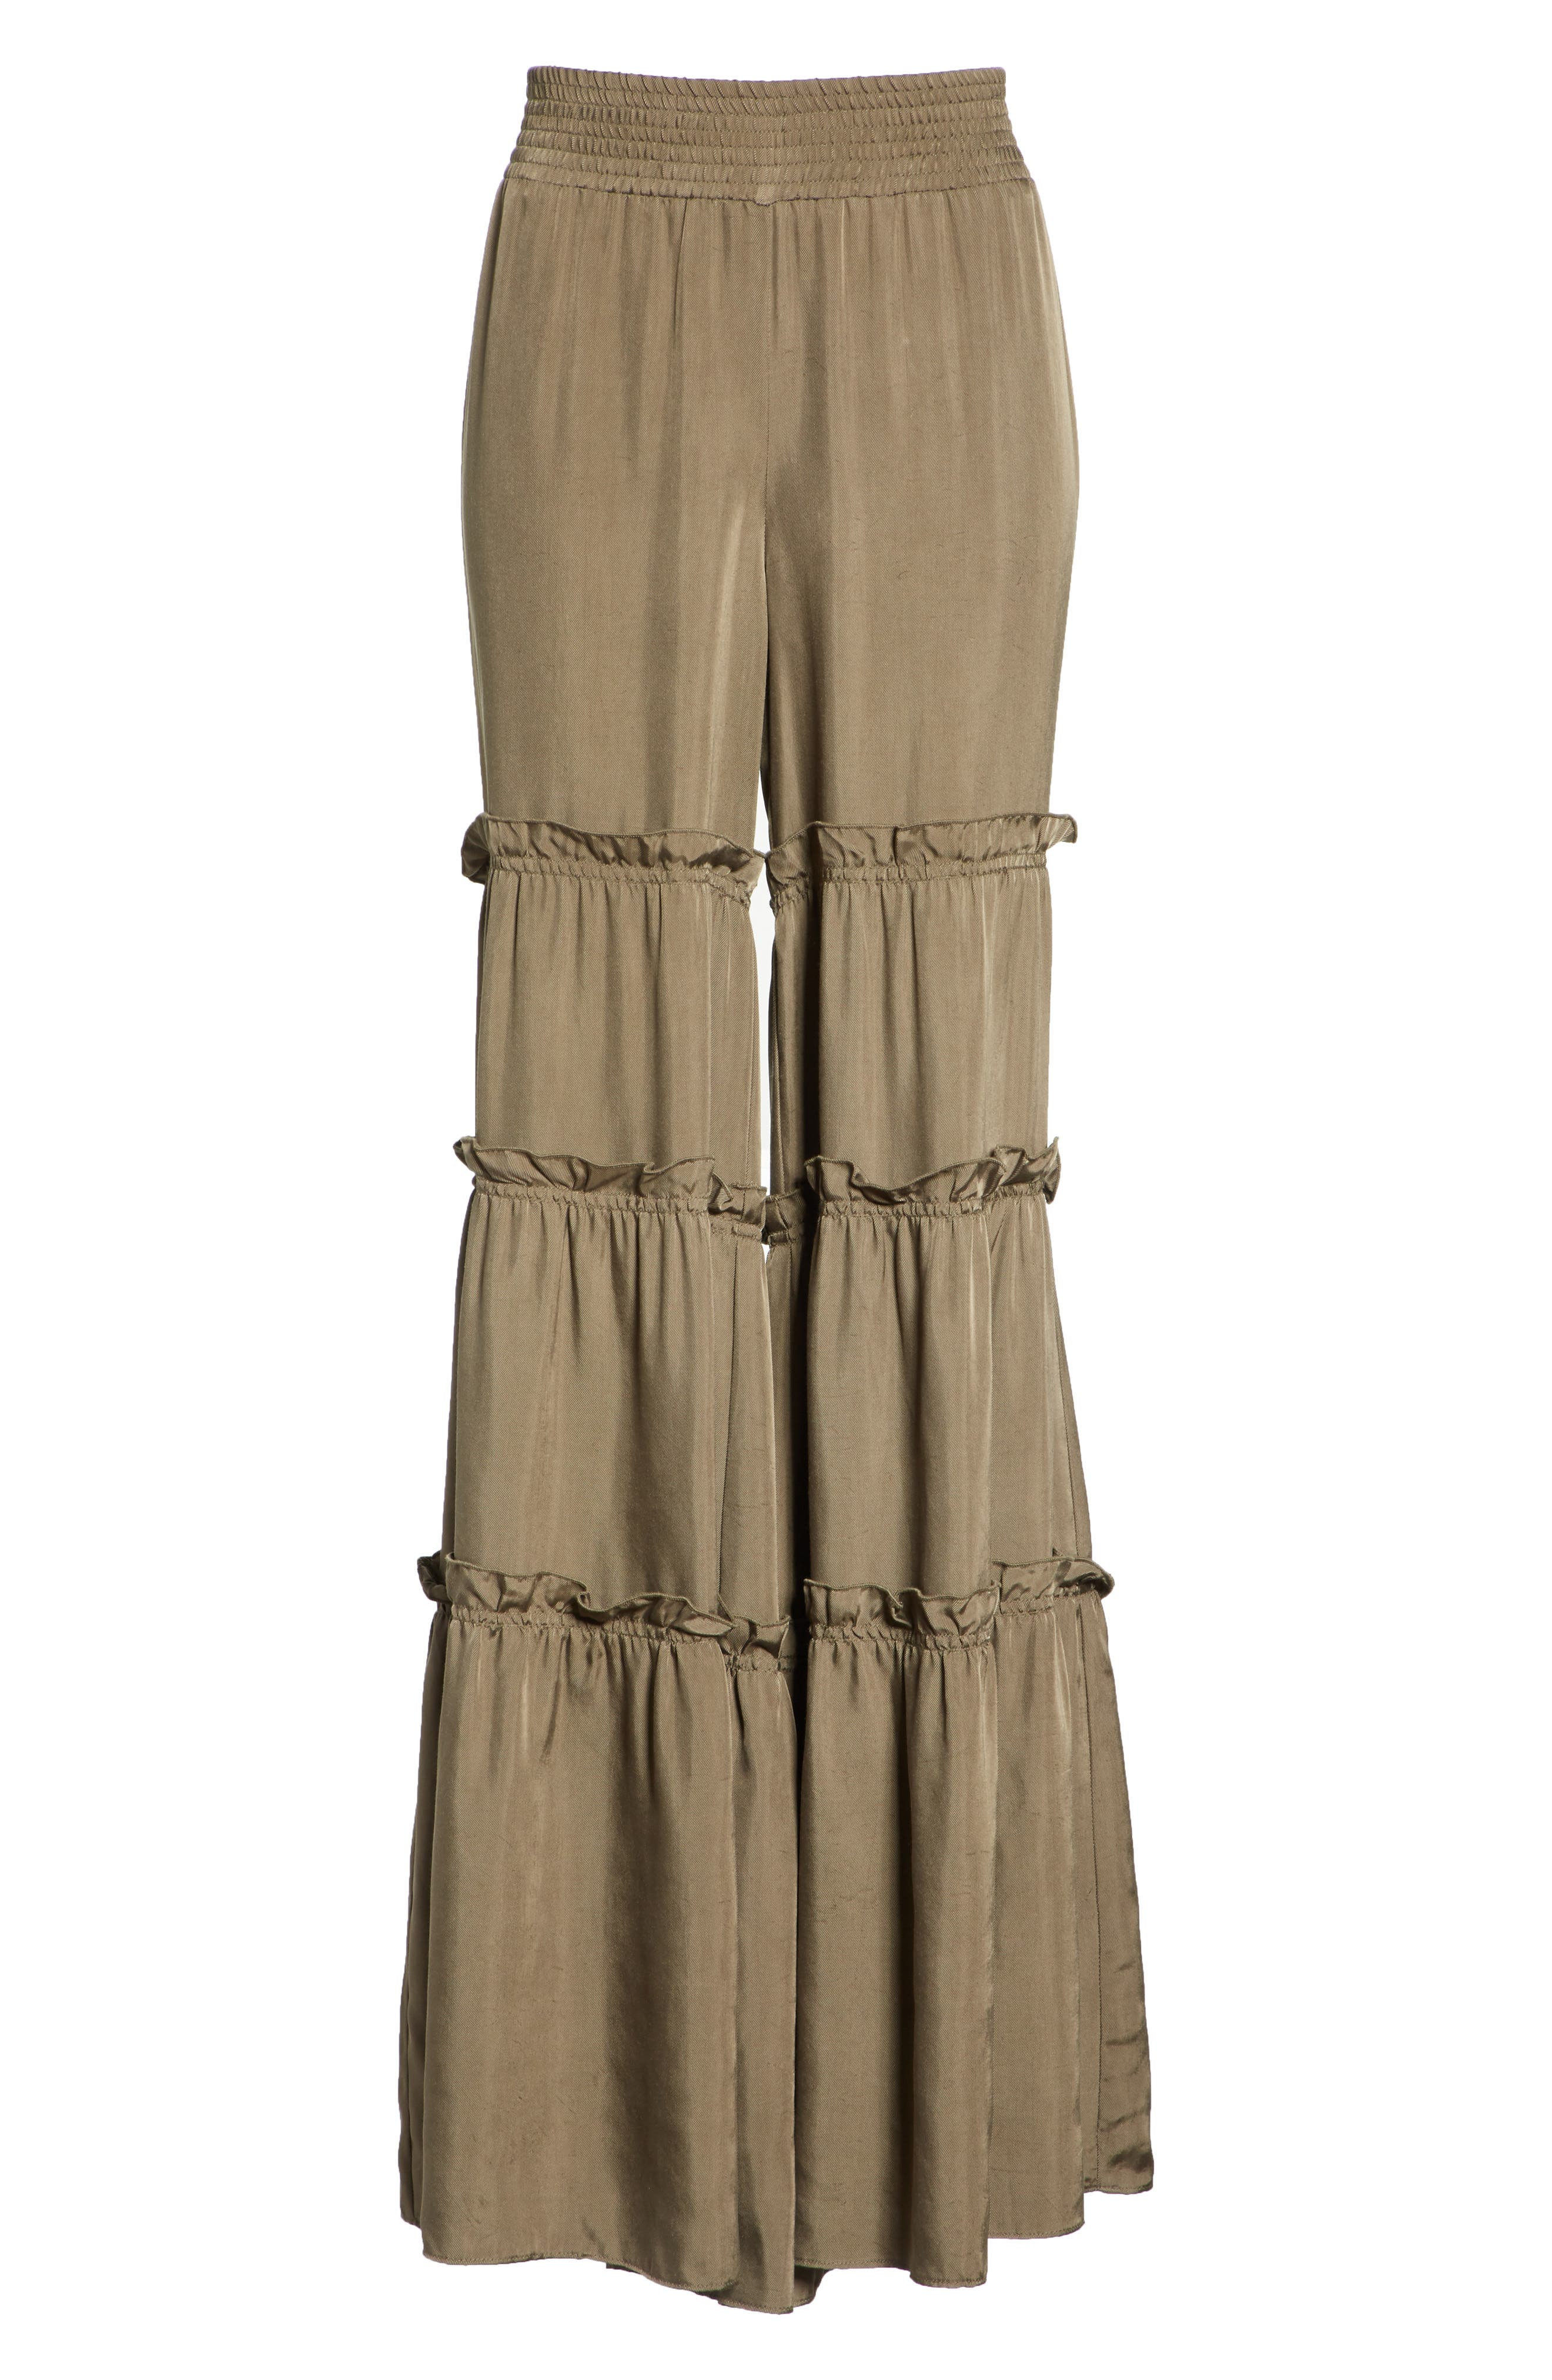 Avery Ruffle Tier Pants,                             Alternate thumbnail 6, color,                             319